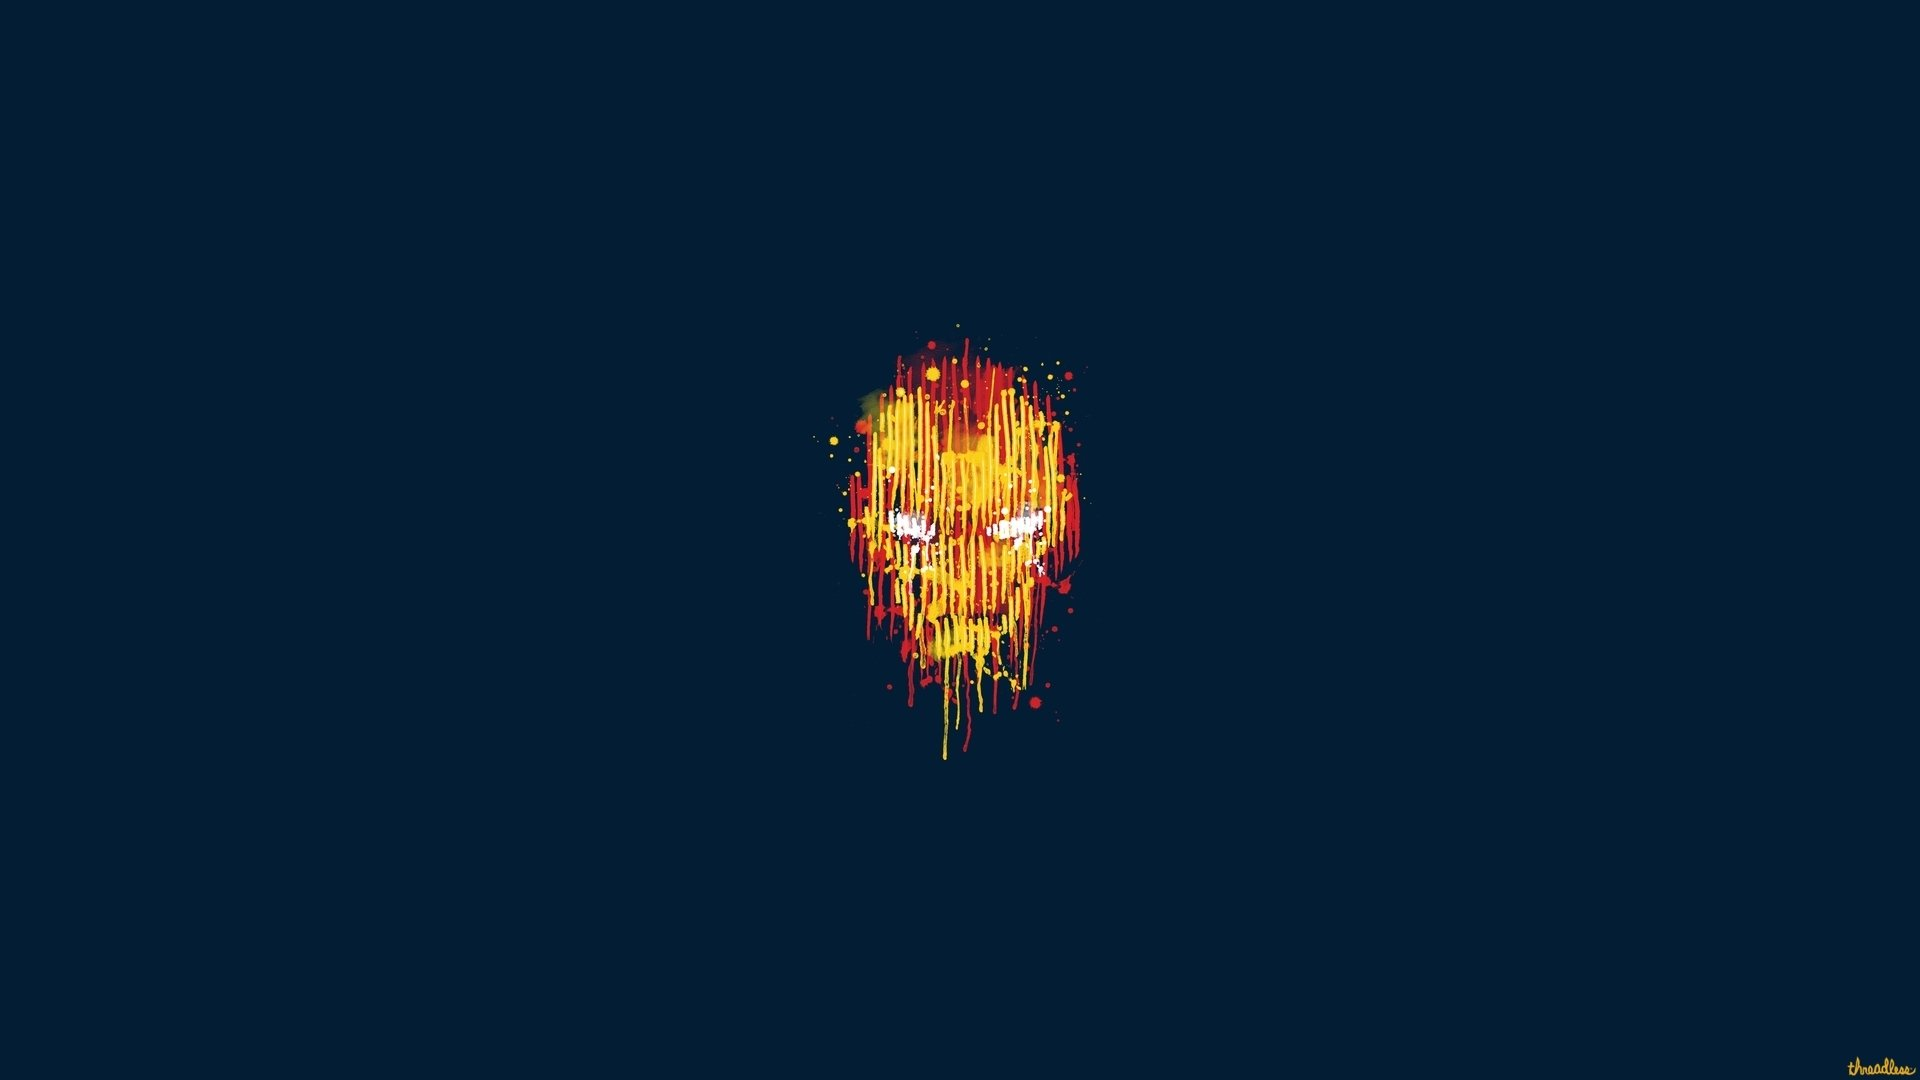 Iron Man Wallpapers Full Hd Desktop Background: Iron Man Full HD Wallpaper And Background Image